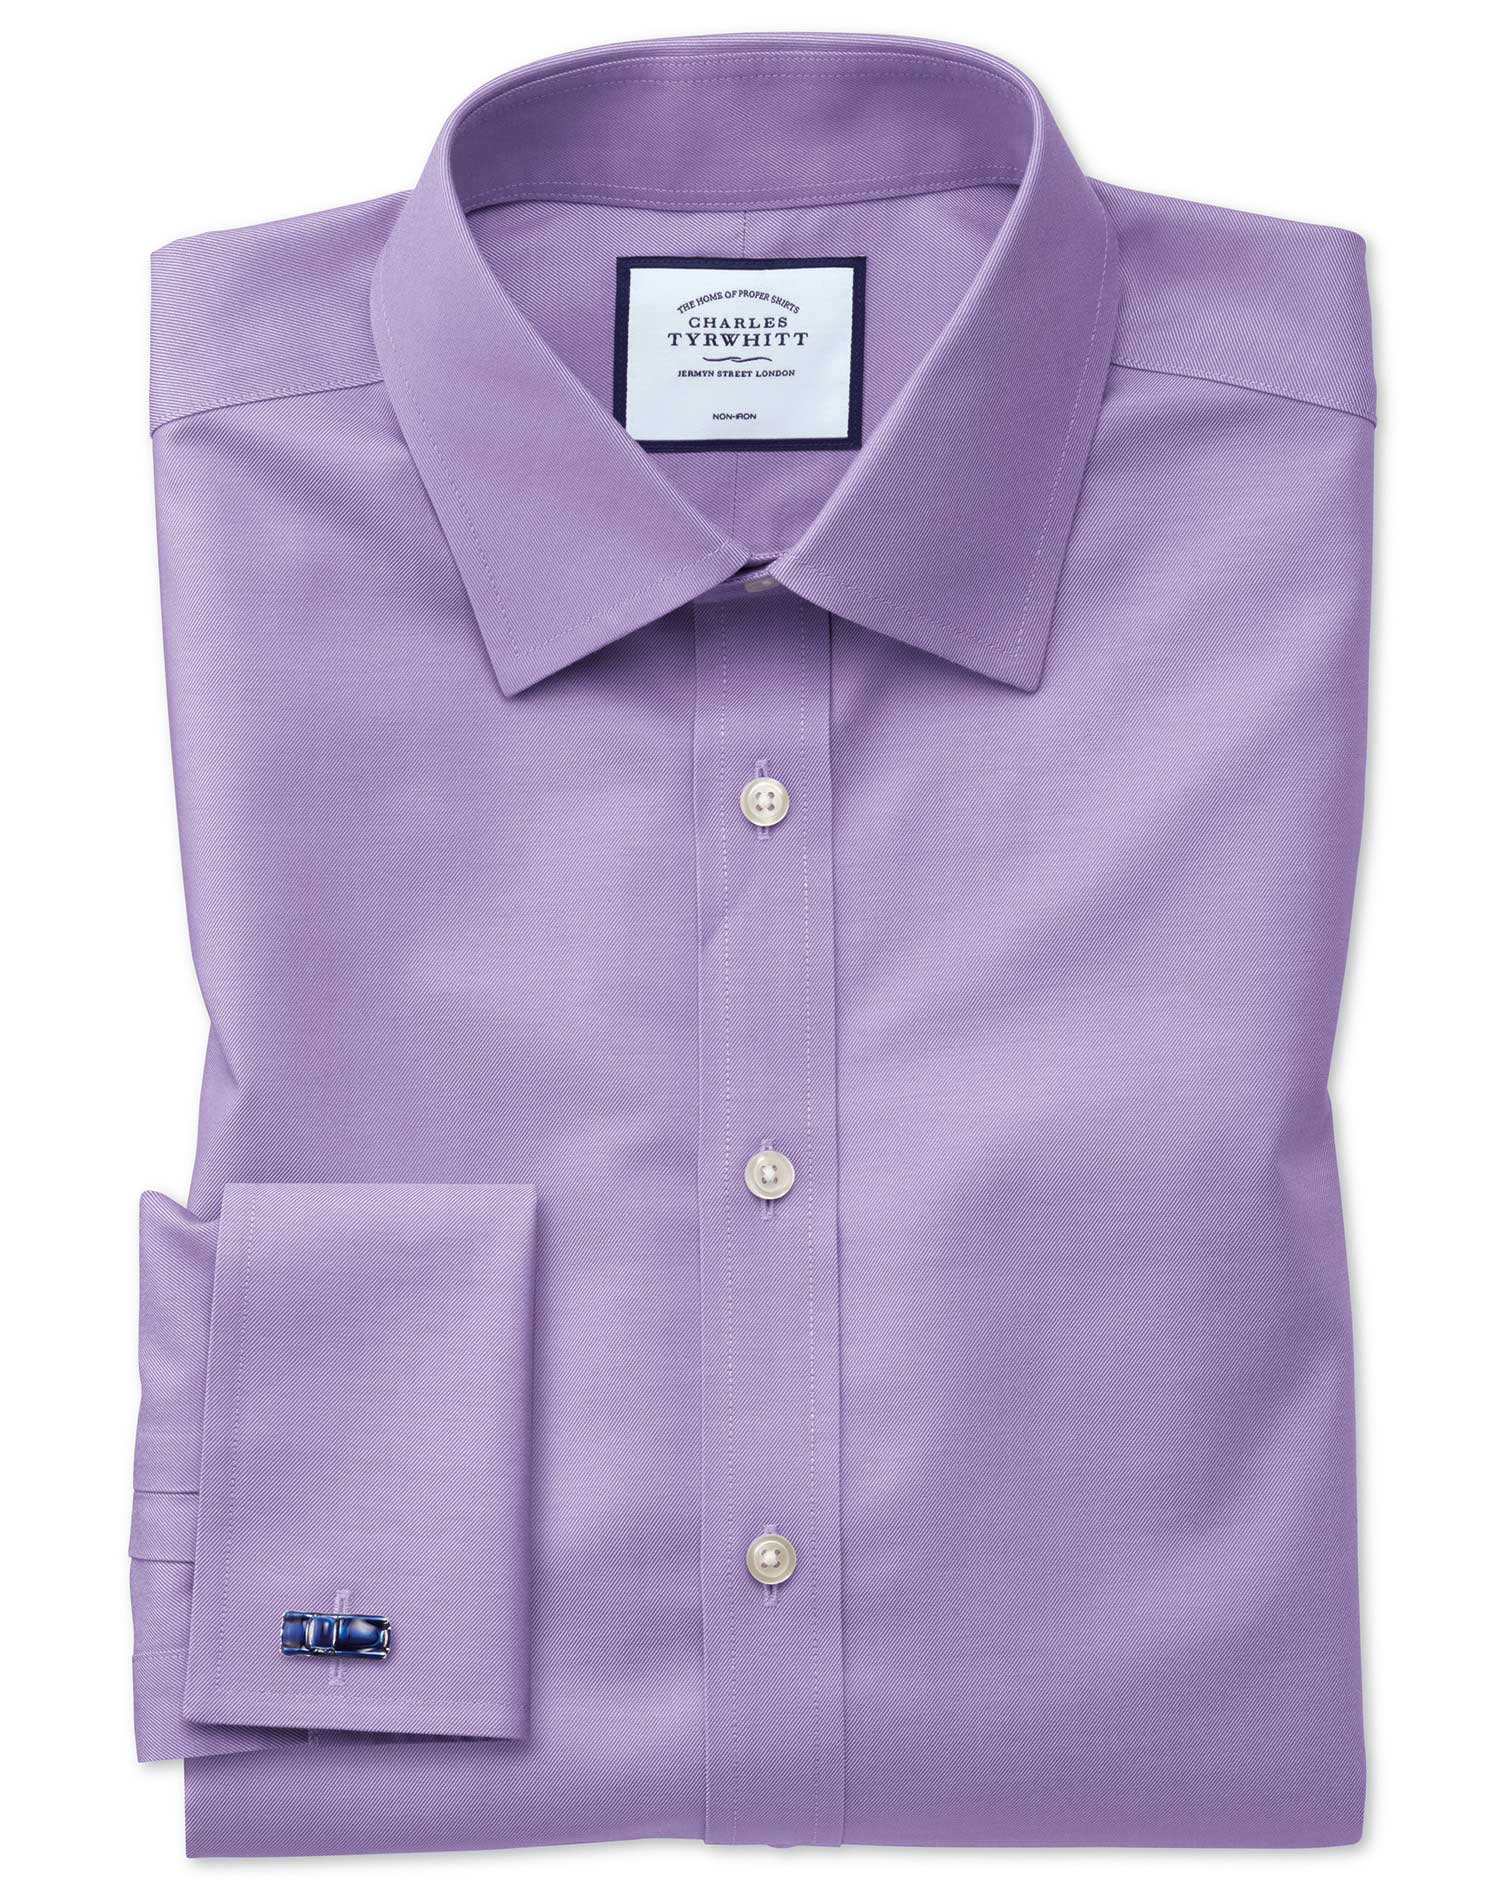 Lilac Non-Iron Twill Classic Fit Single Cuff Size 16/34 by Charles Tyrwhitt